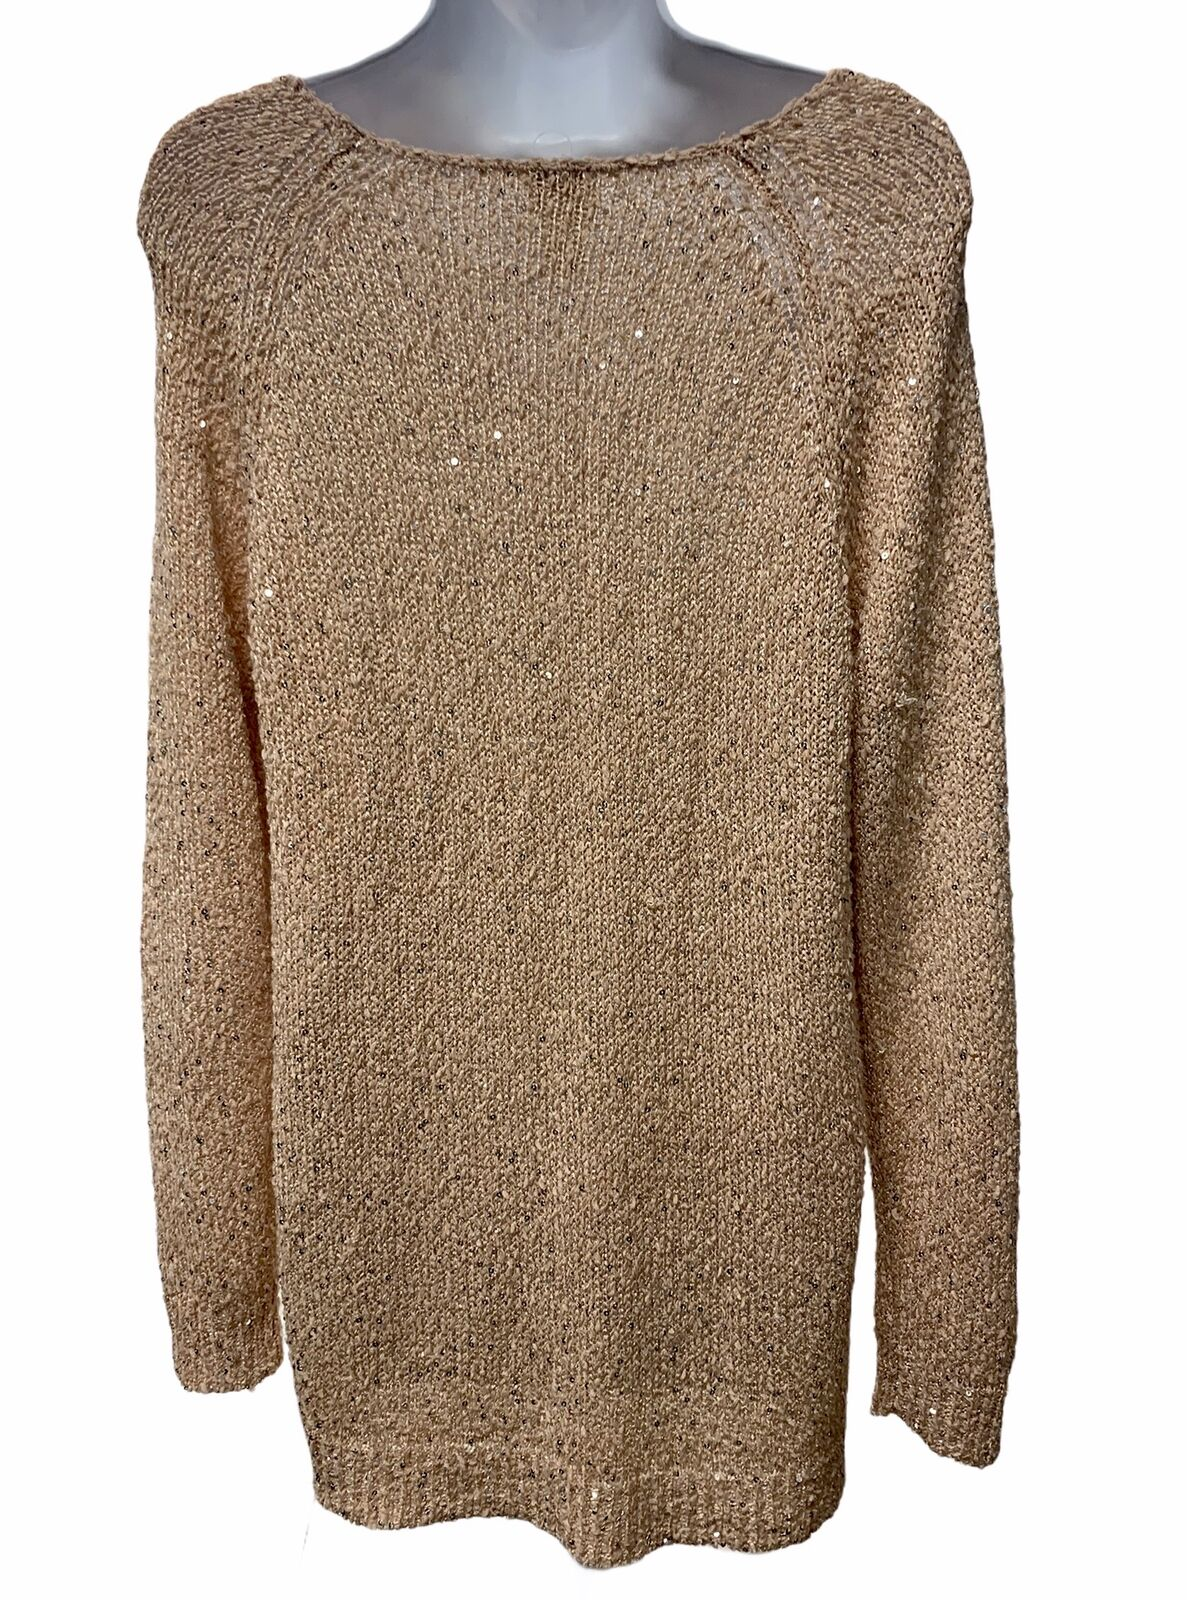 Chico's Sequin Claire Knit Sweater Womens Light P… - image 2